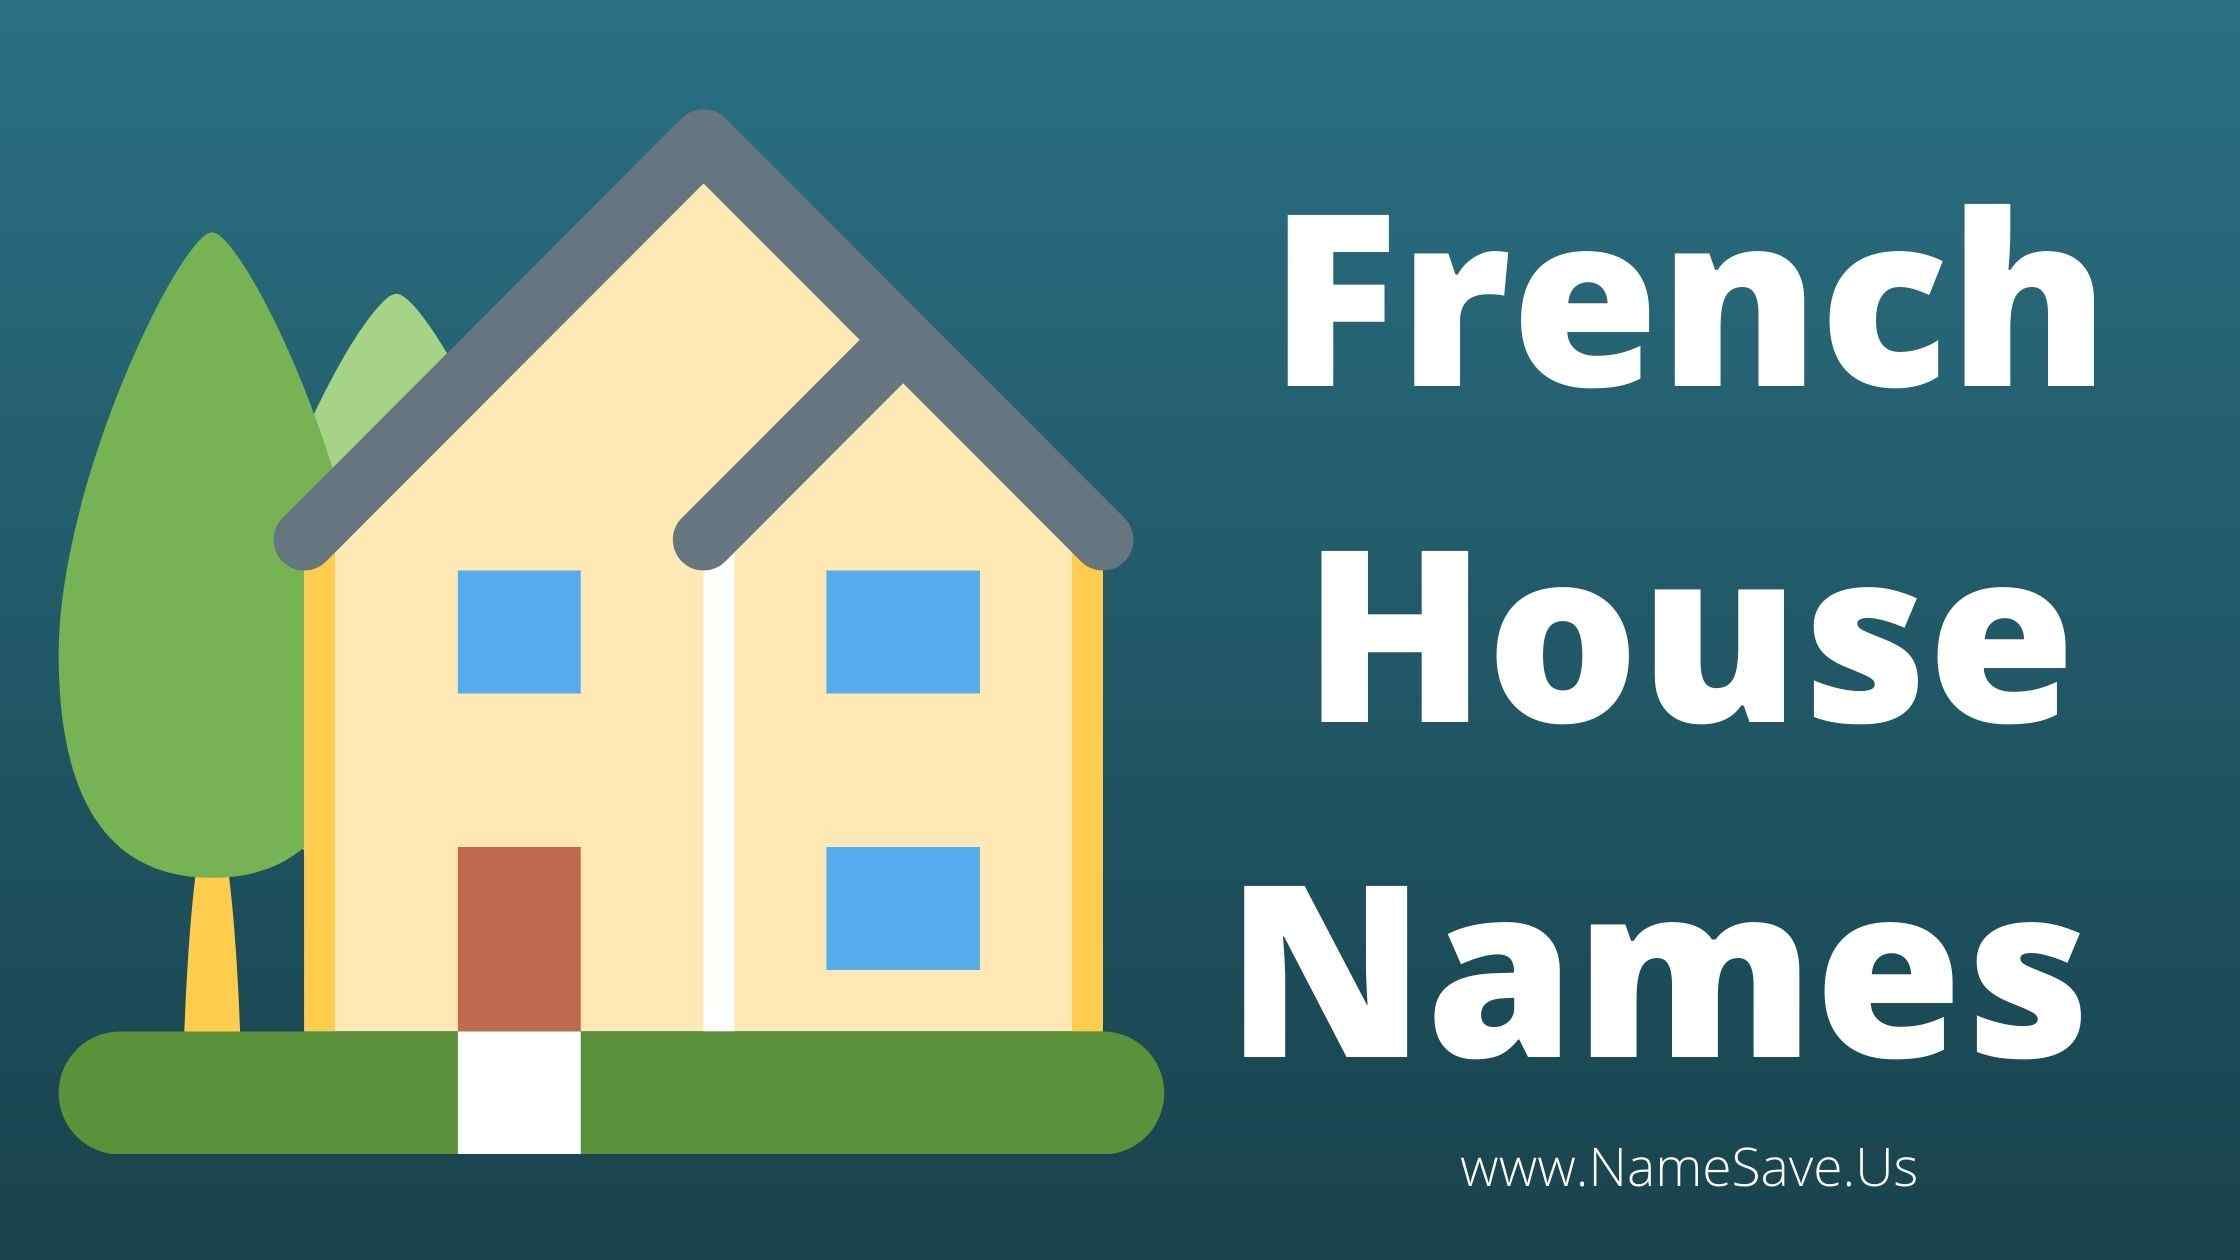 French House Names